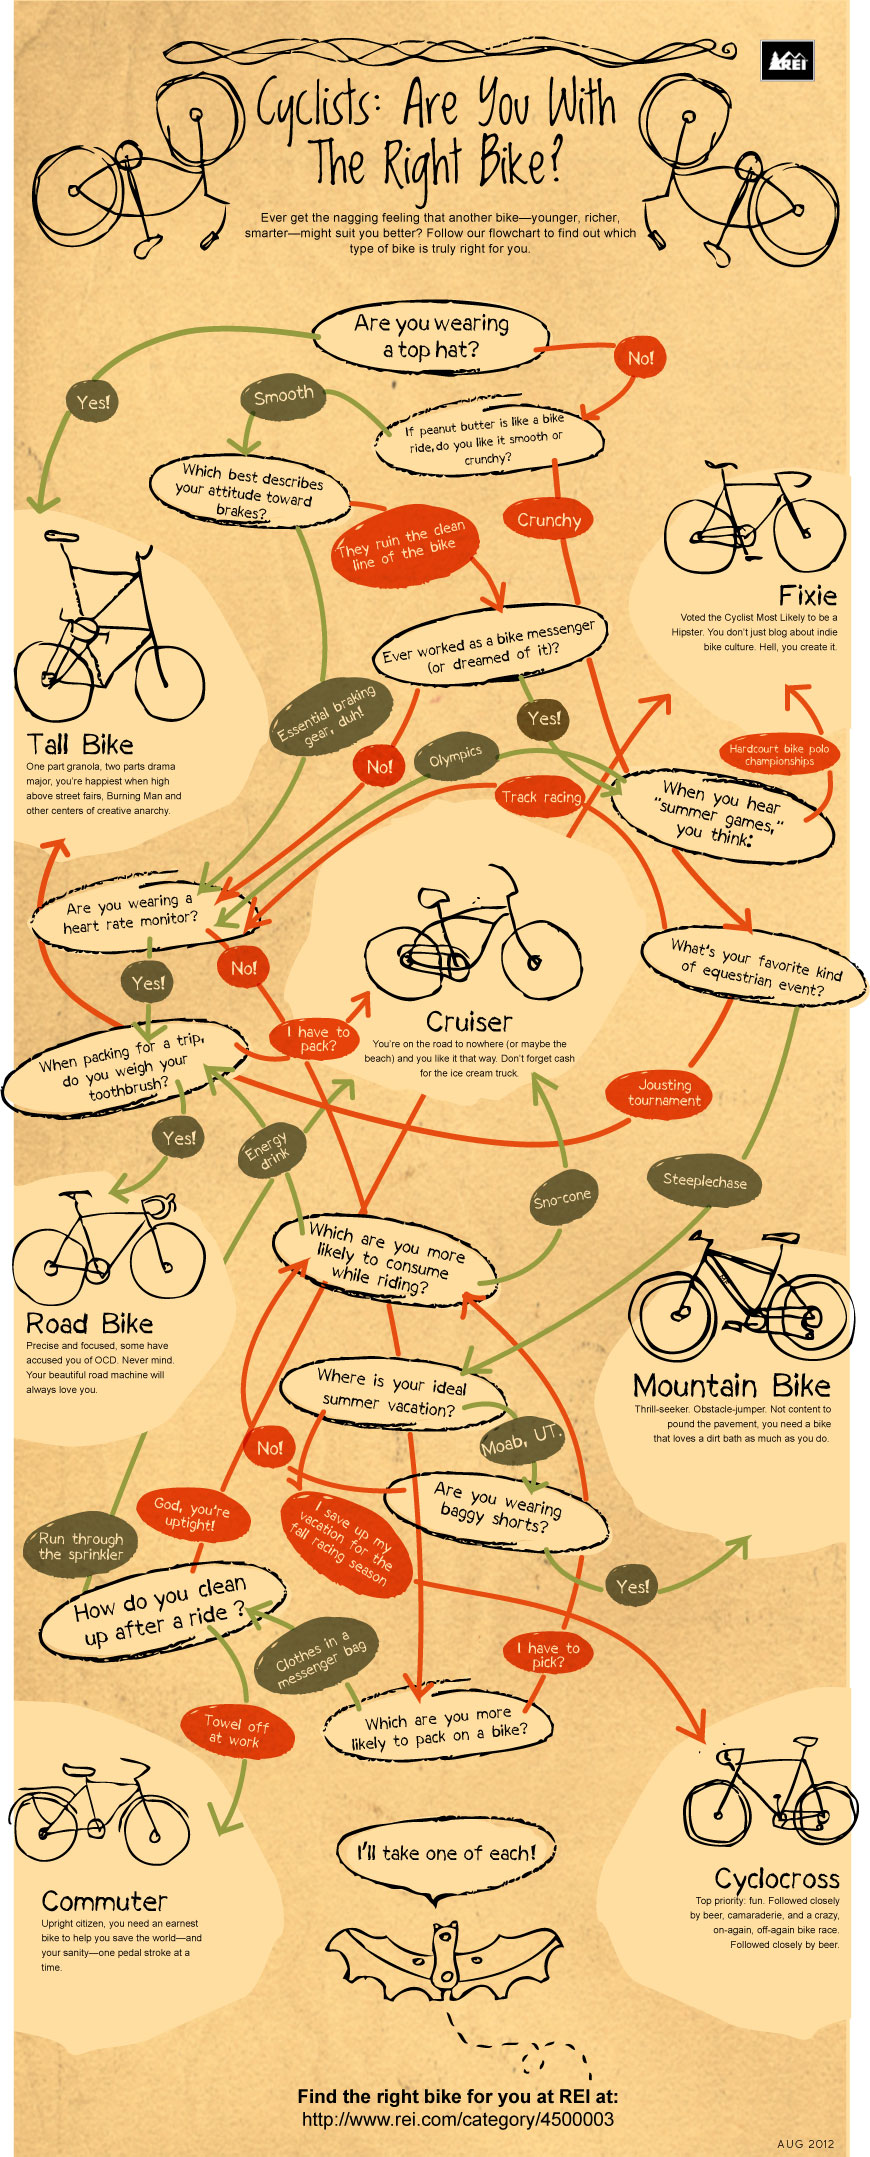 Bikes Cyclists: Are You With the Right Bike?